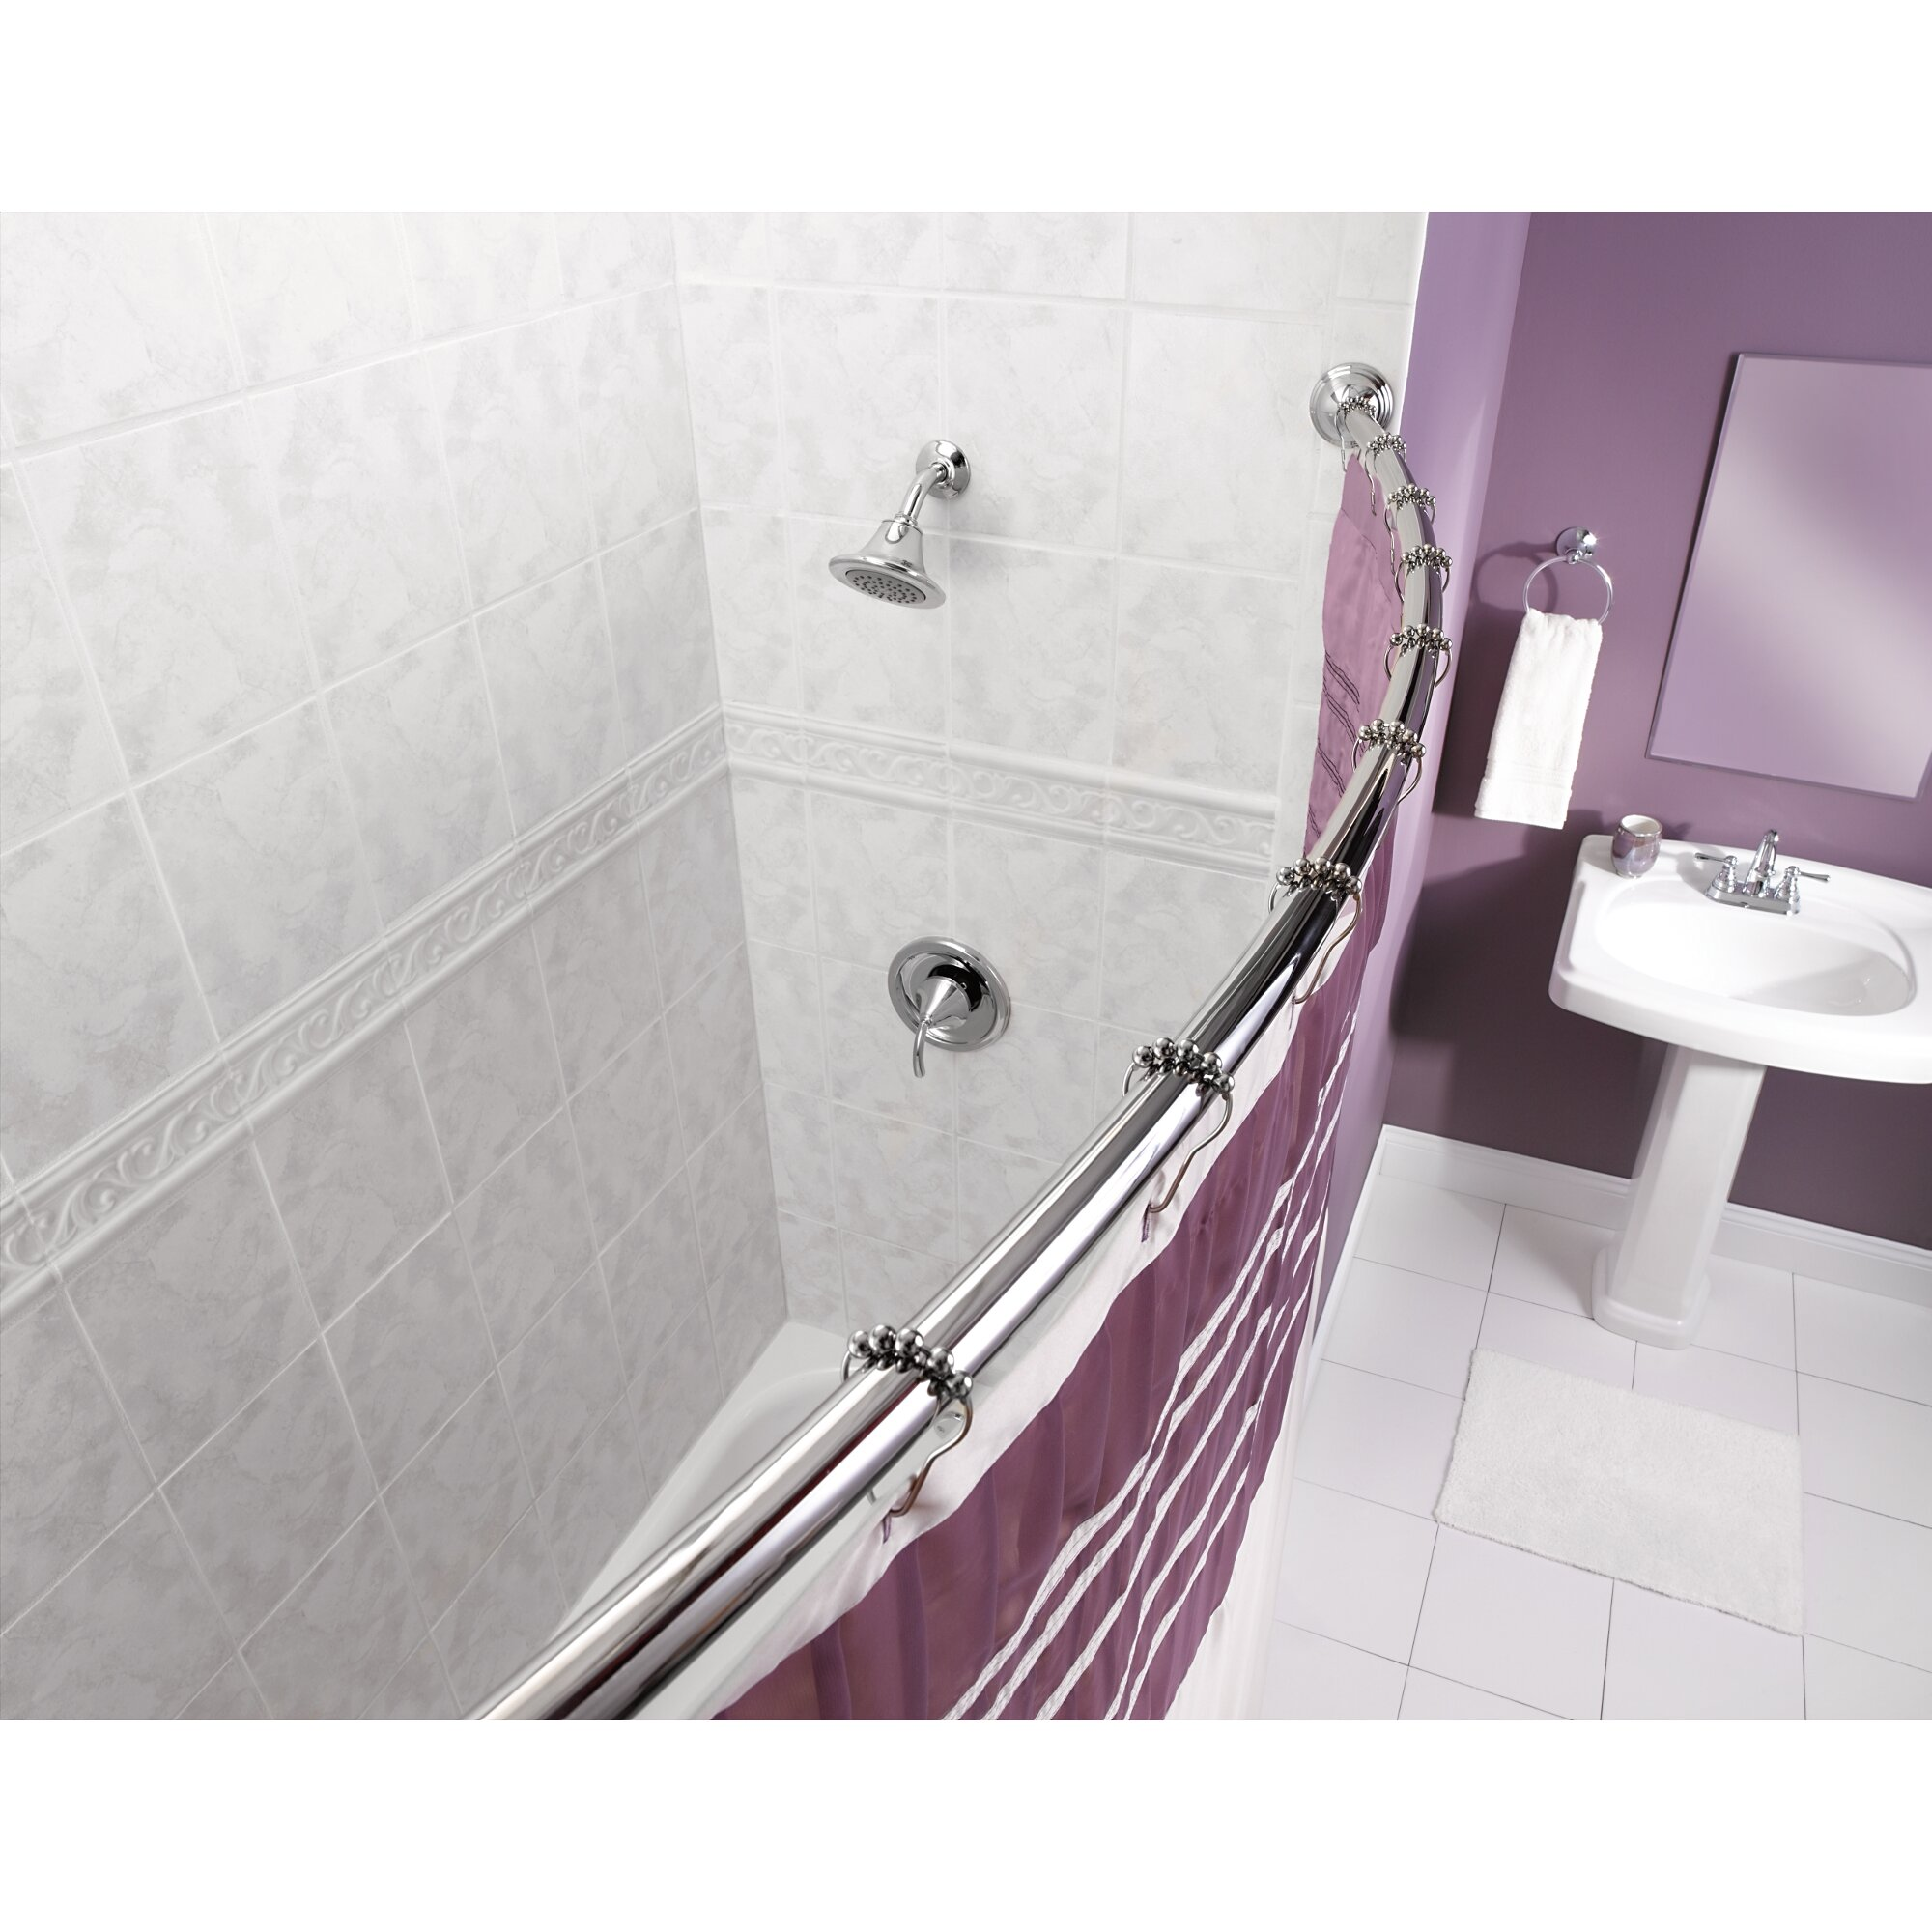 Installing Curved Shower Curtain Rod On Tile Curtain